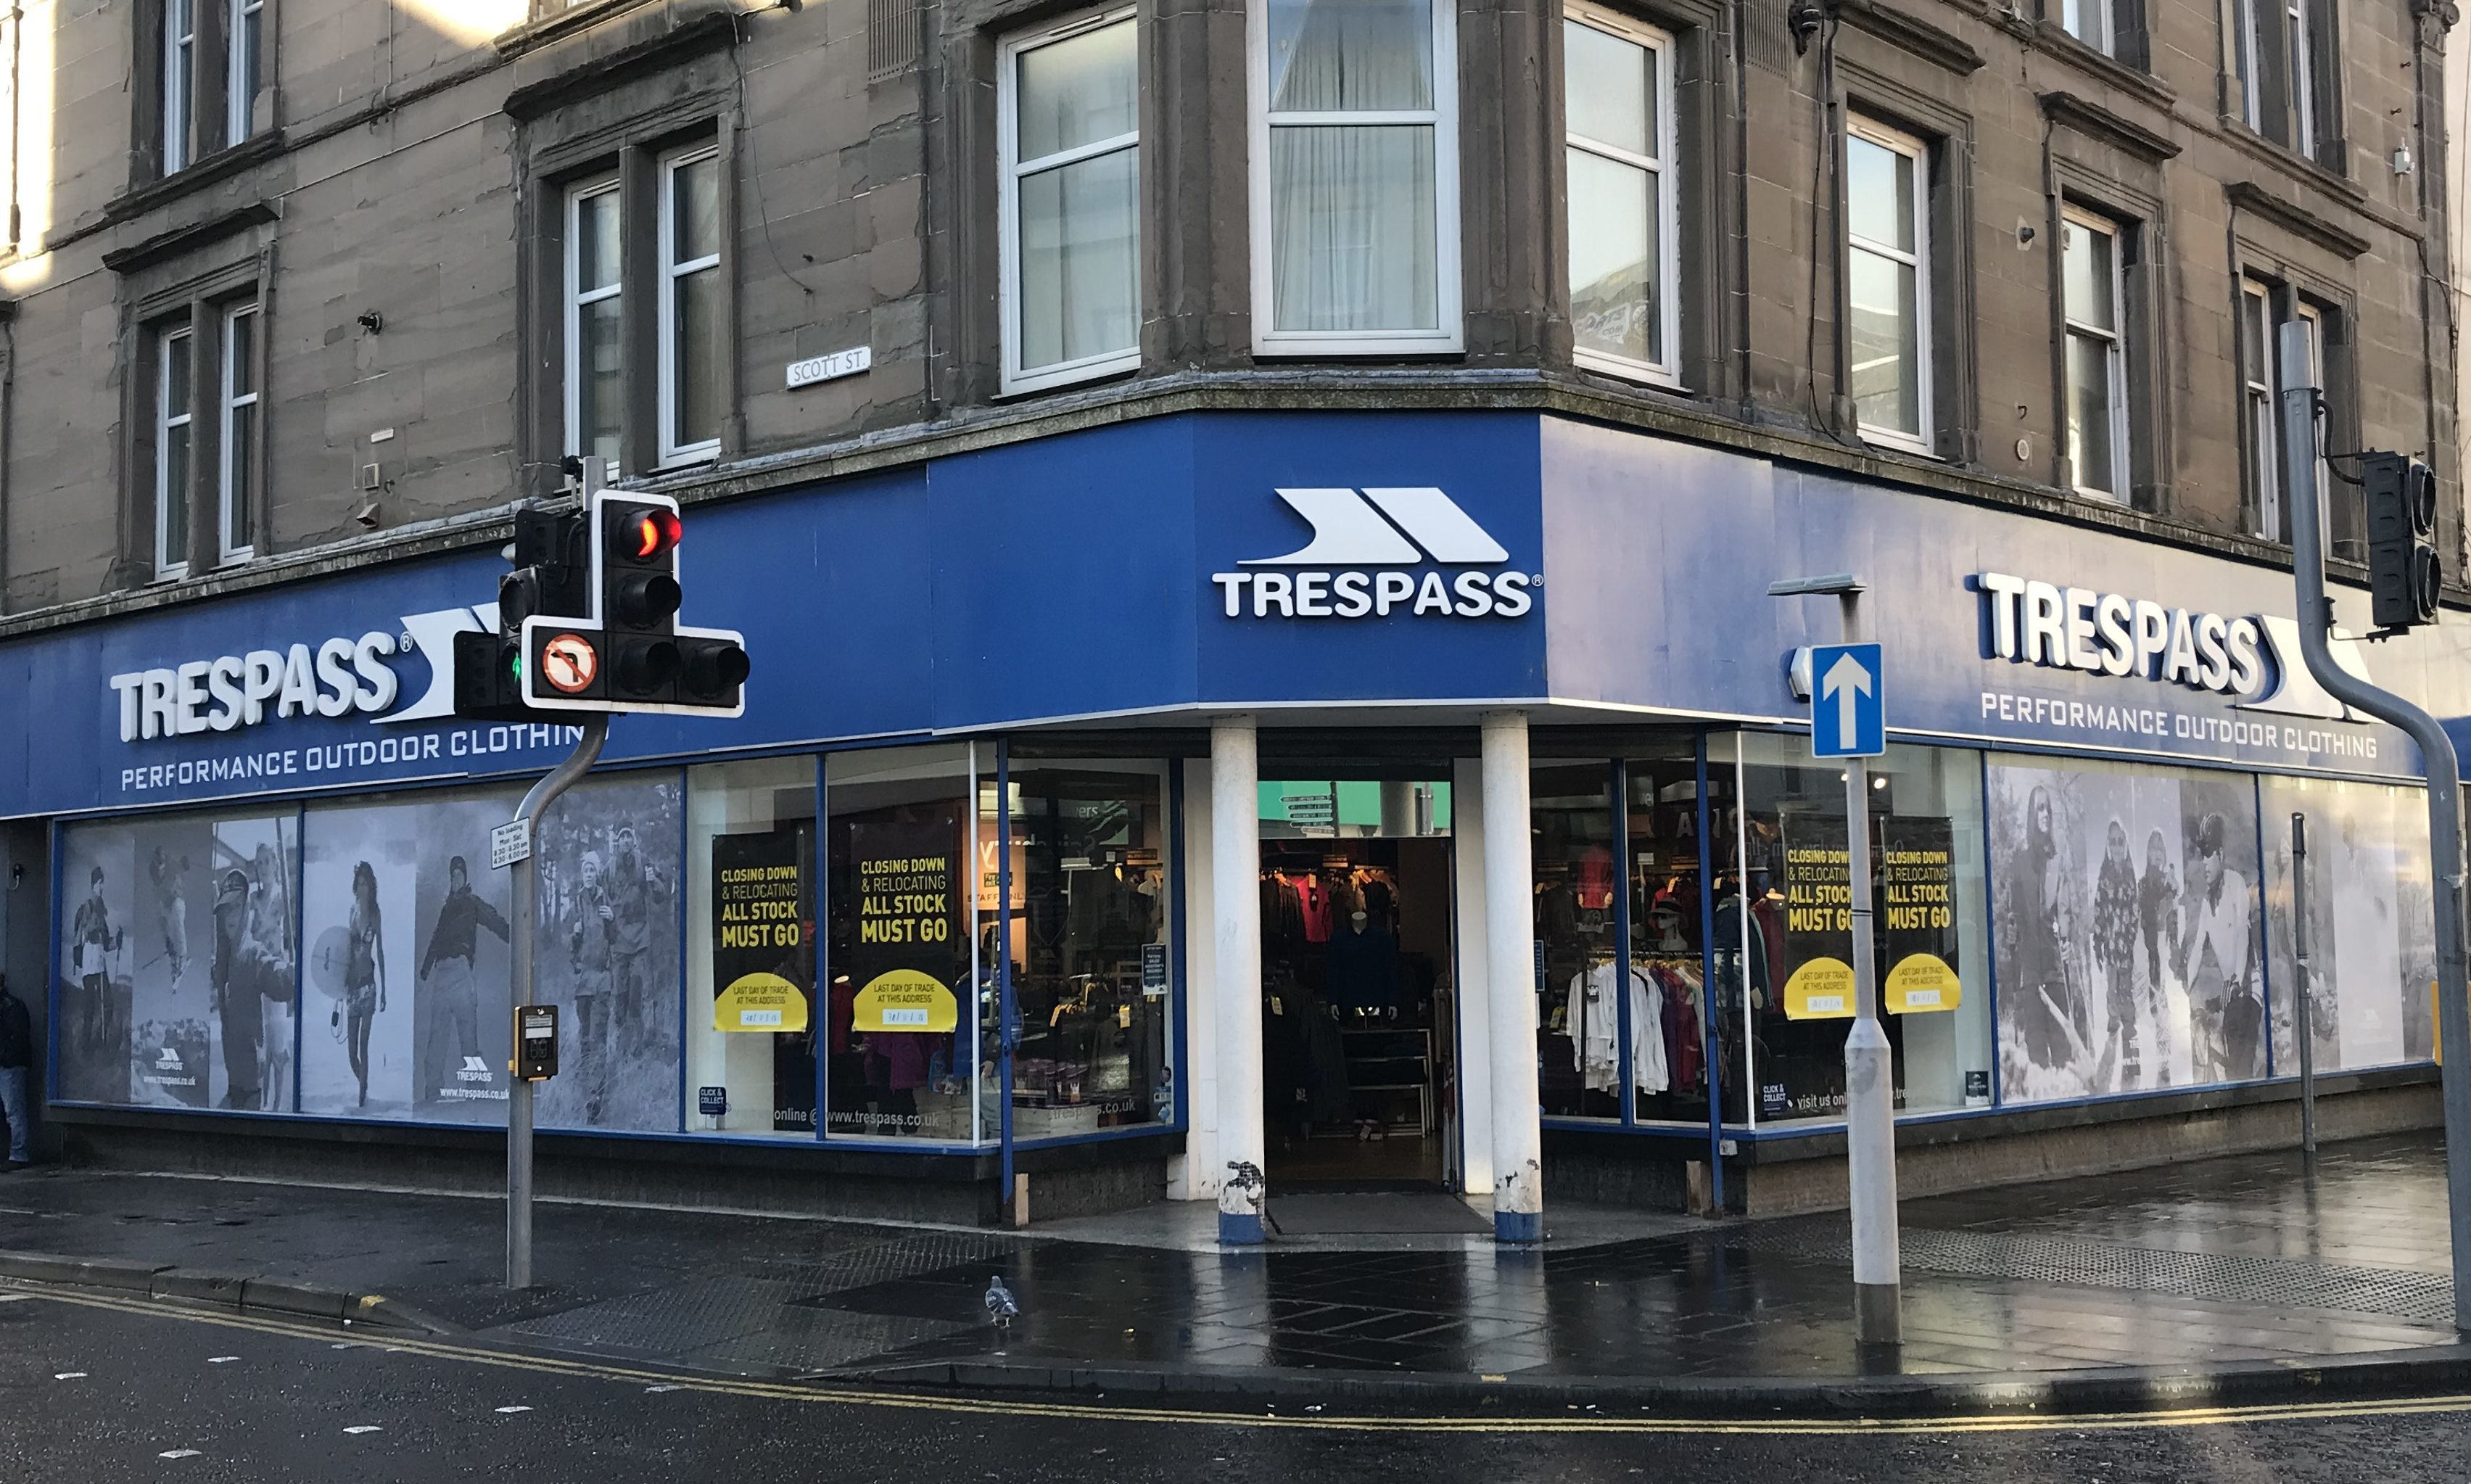 The Trespass store in Perth